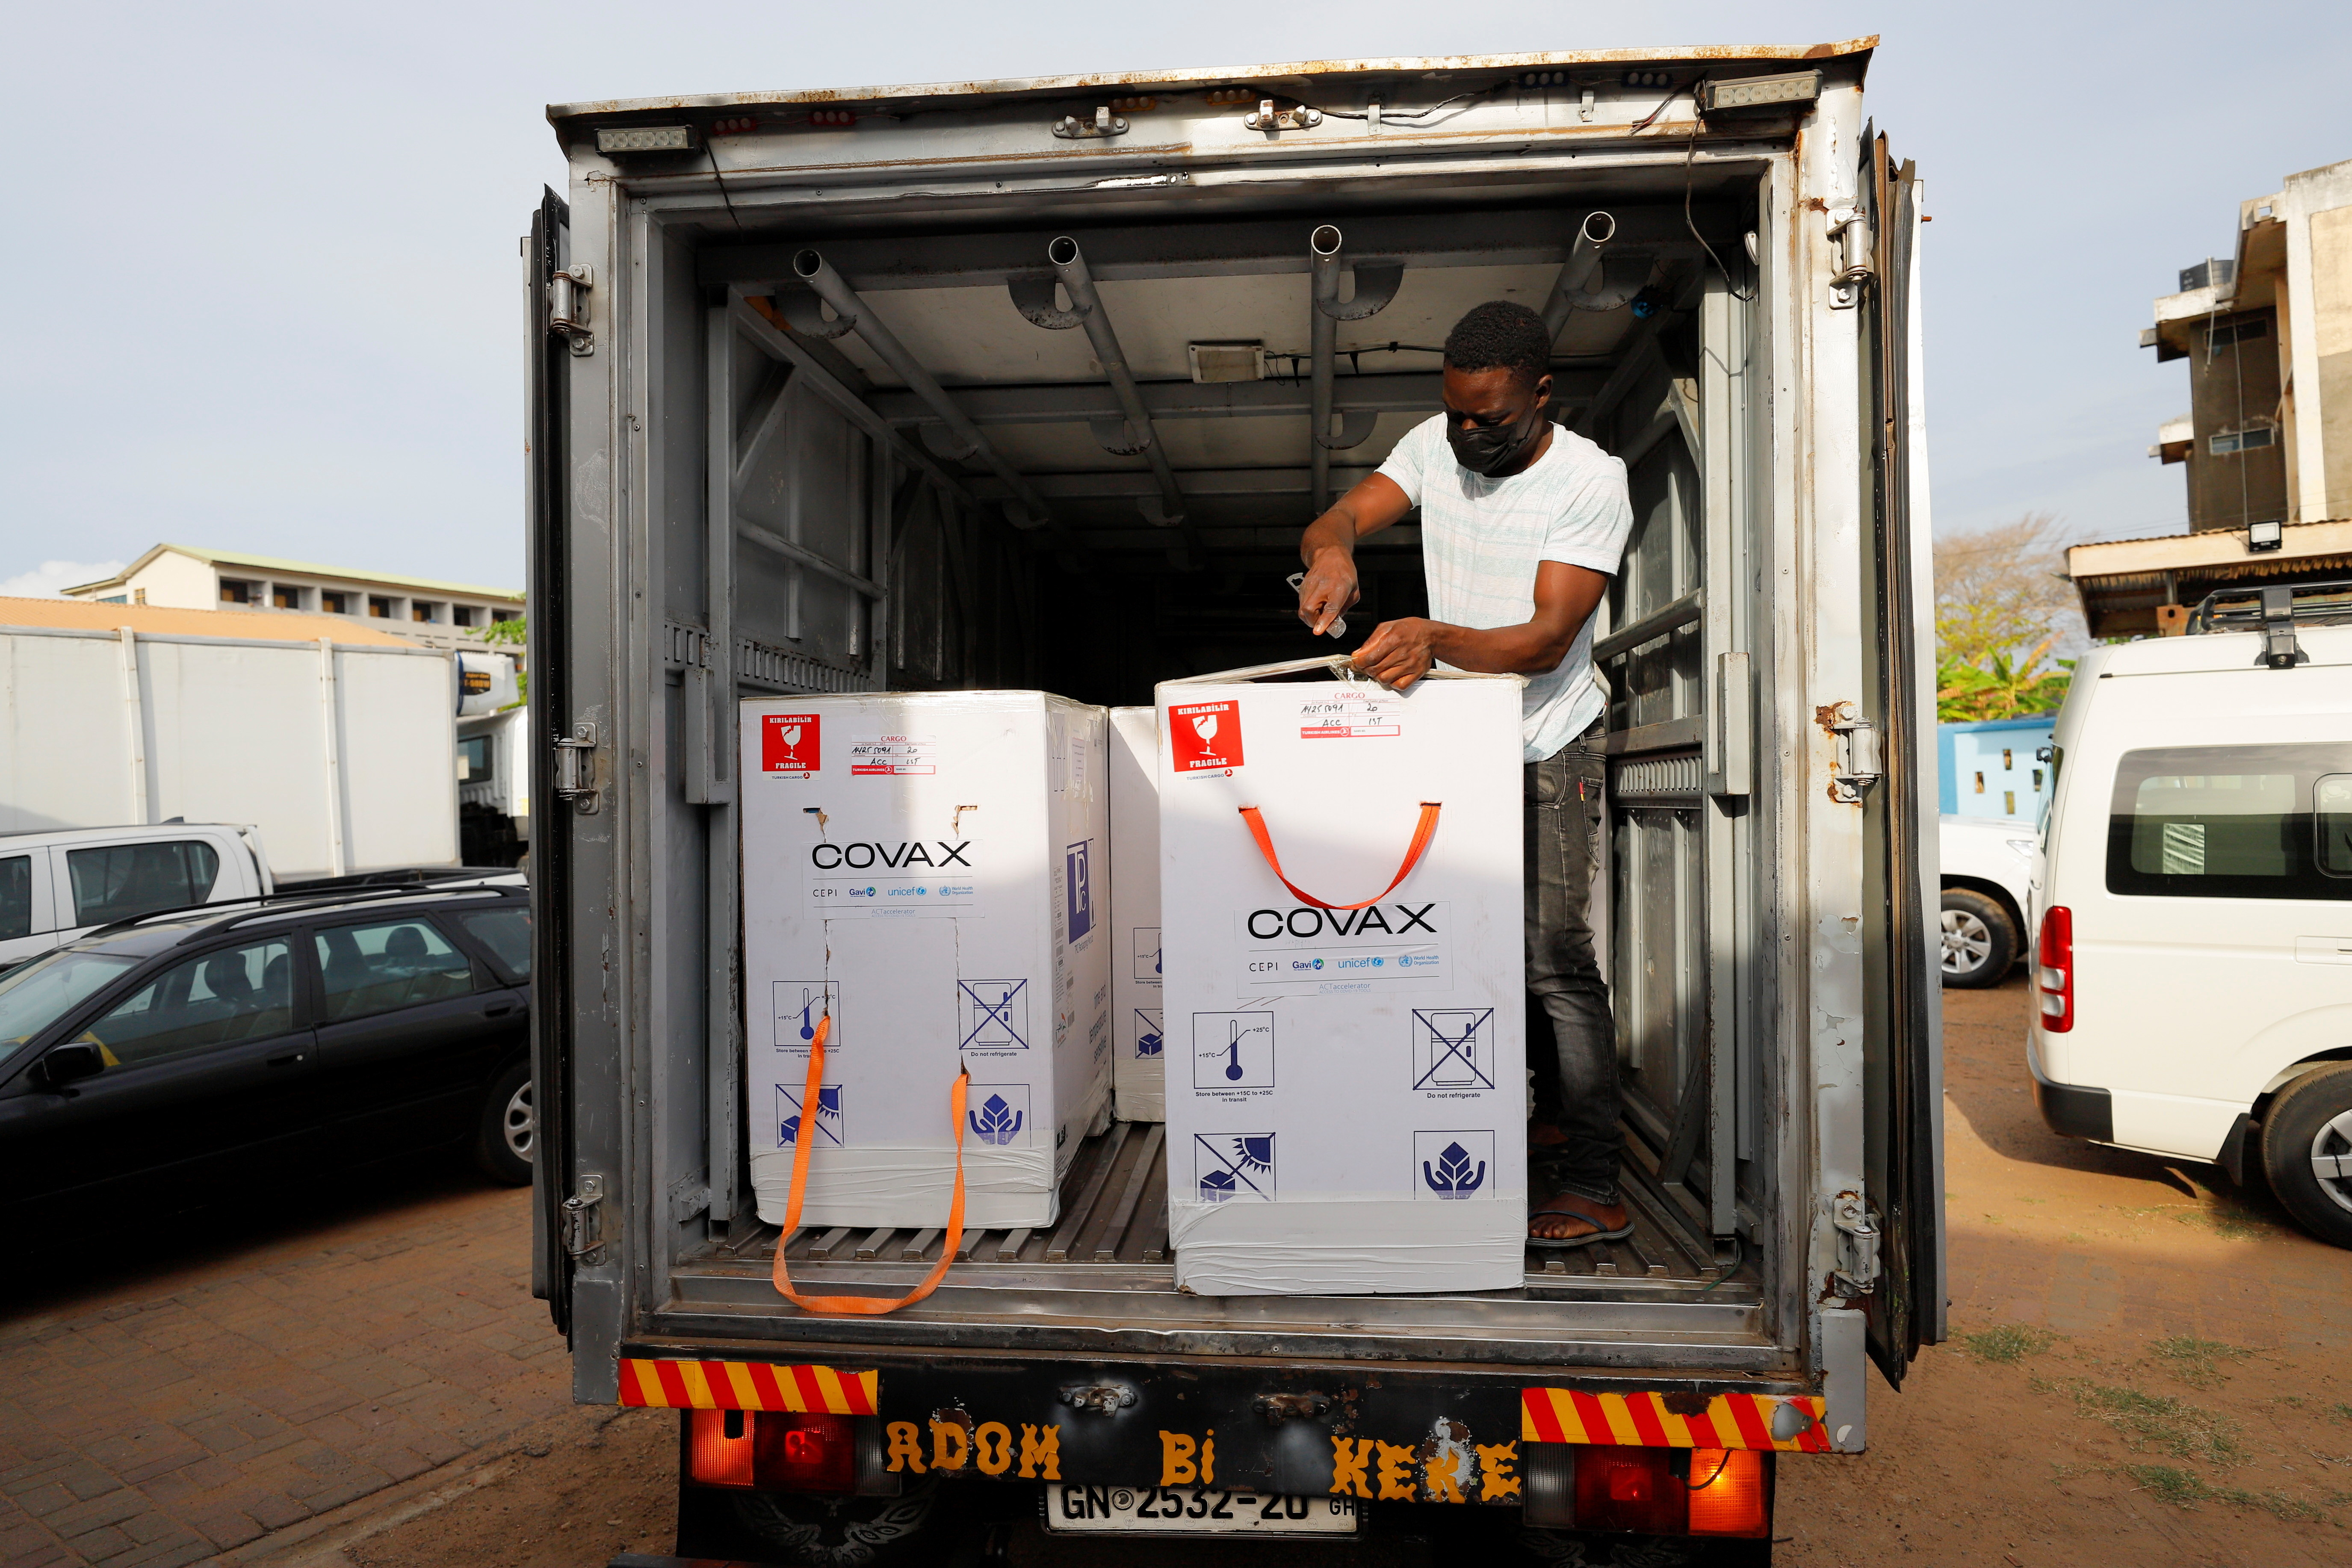 Boxes of Oxford/AstraZeneca coronavirus disease (COVID-19) vaccines, redeployed from the Democratic Republic of Congo, are seen loaded onto a refrigerated delivery truck in Accra, Ghana, May 7, 2021.